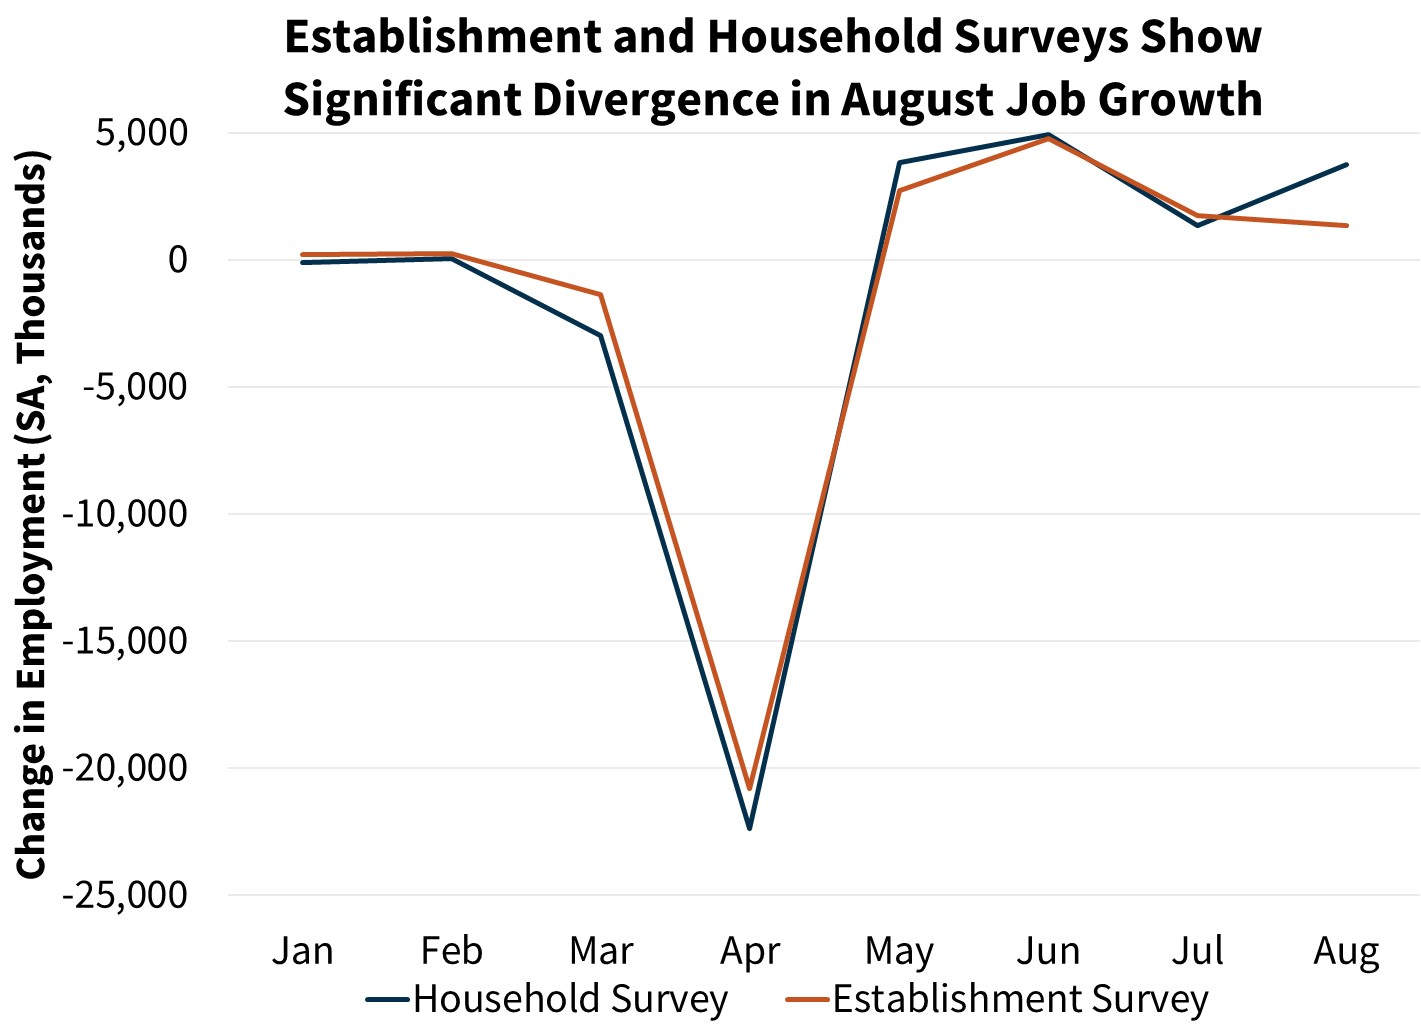 Establishment and Household Surveys Show Significant Divergence in August Job Growth